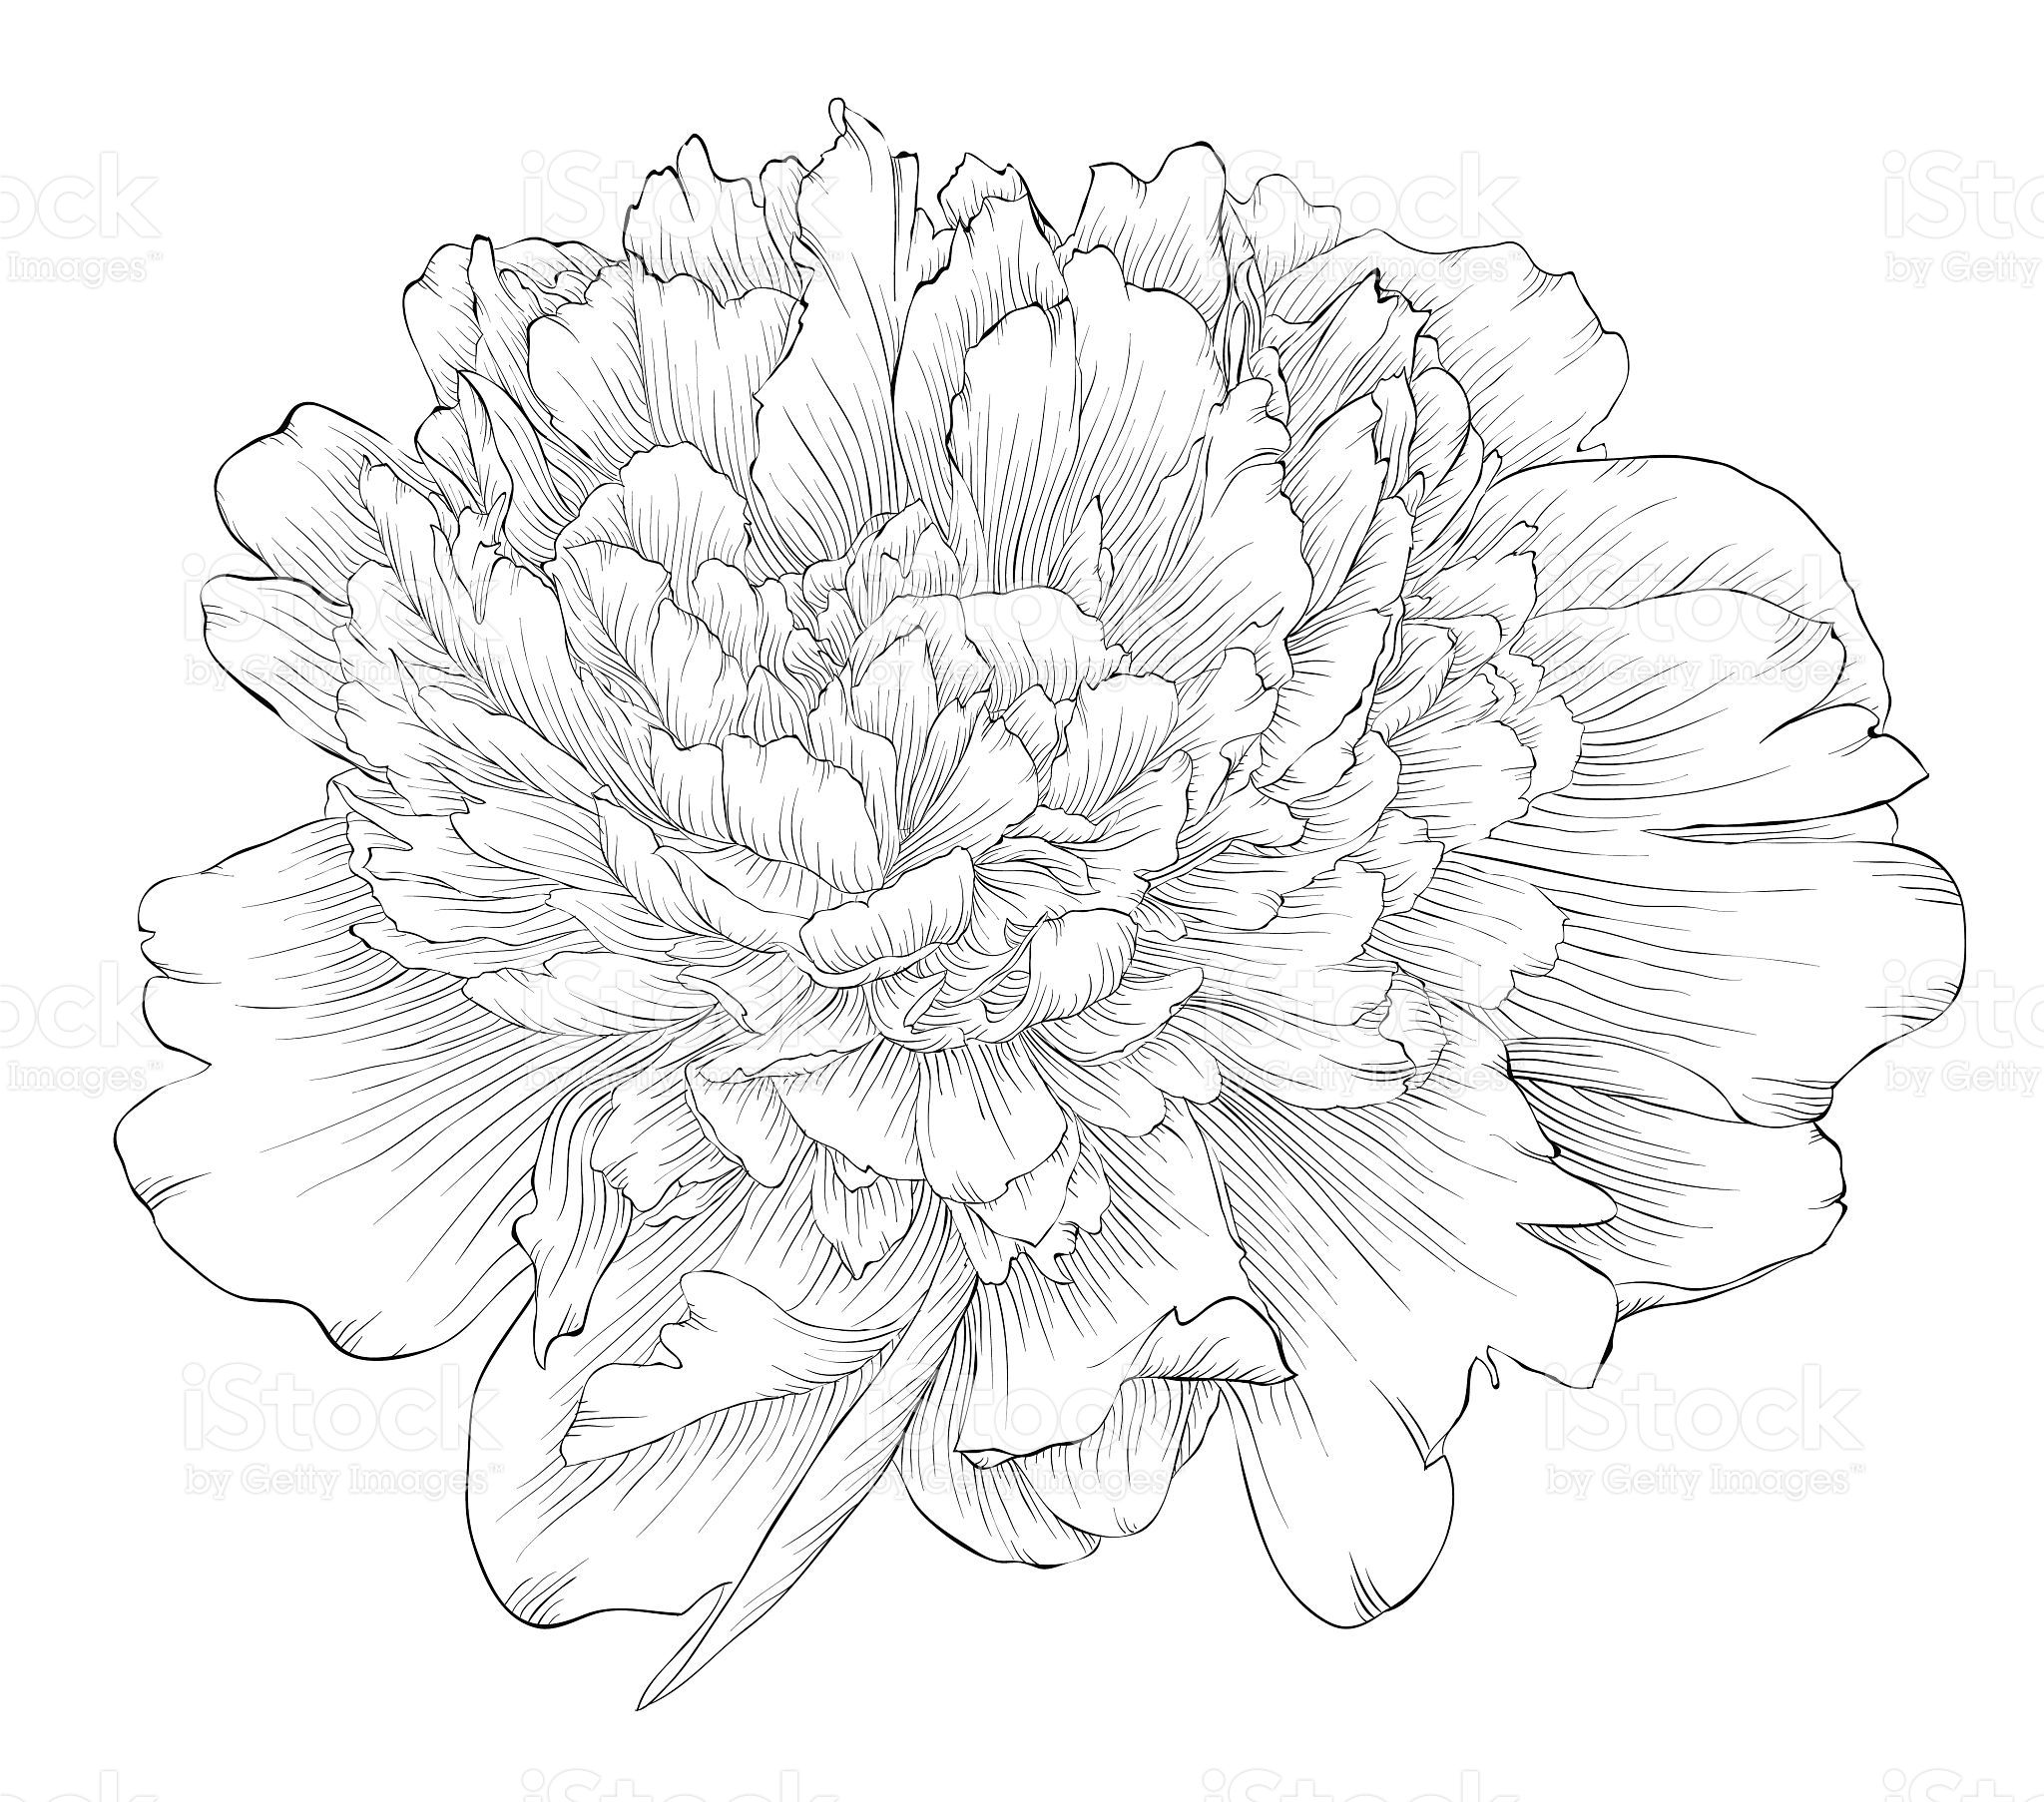 beautiful monochrome black and white peony flower isolated on white 牡丹の 絵 シルクペインティング 描画のためのアイデア